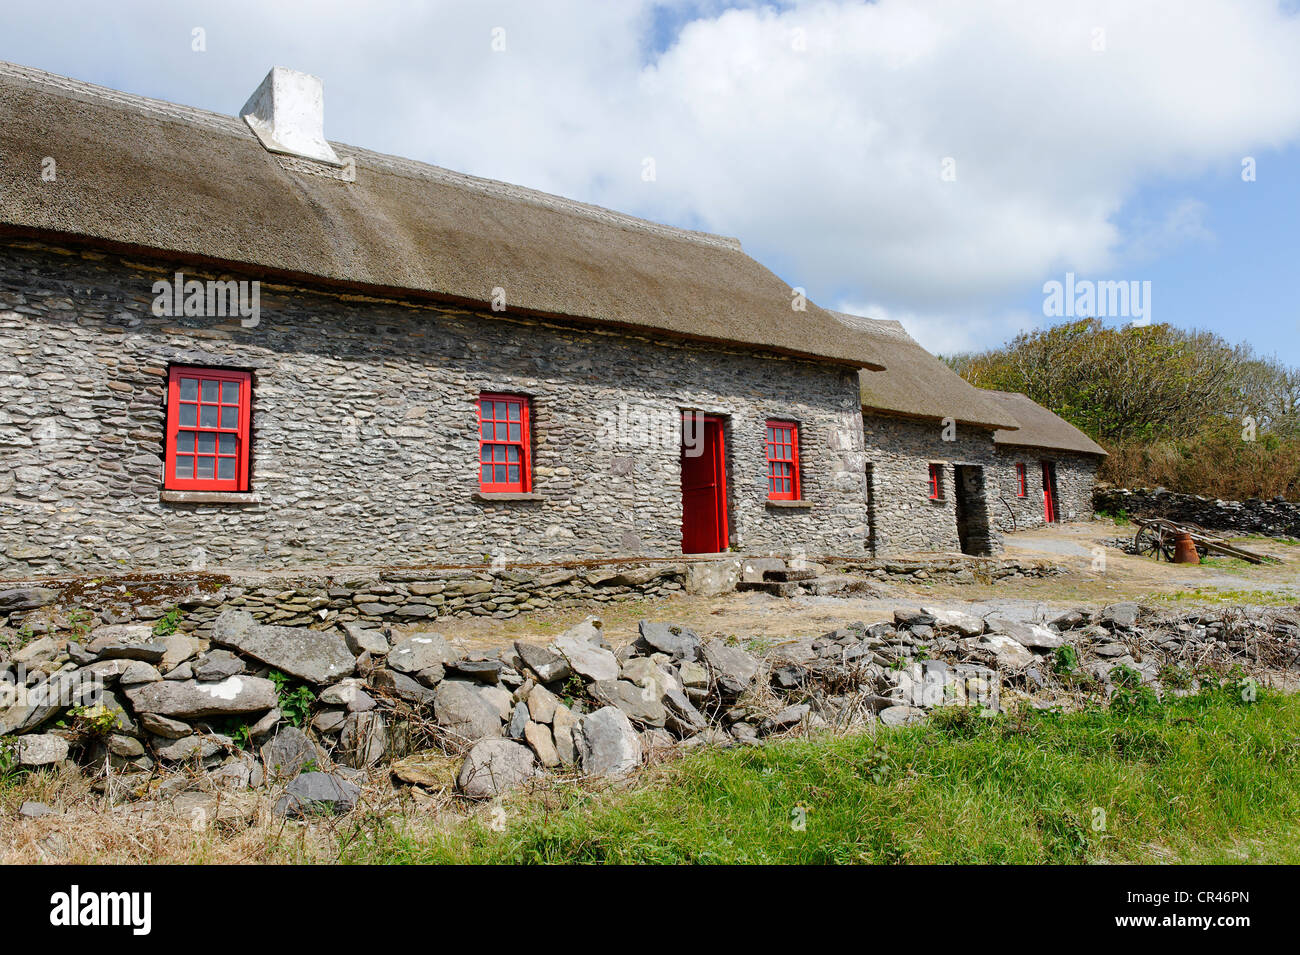 Famine Cottages, museum, Dingle Peninsula, County Kerry, Ireland, Europe - Stock Image